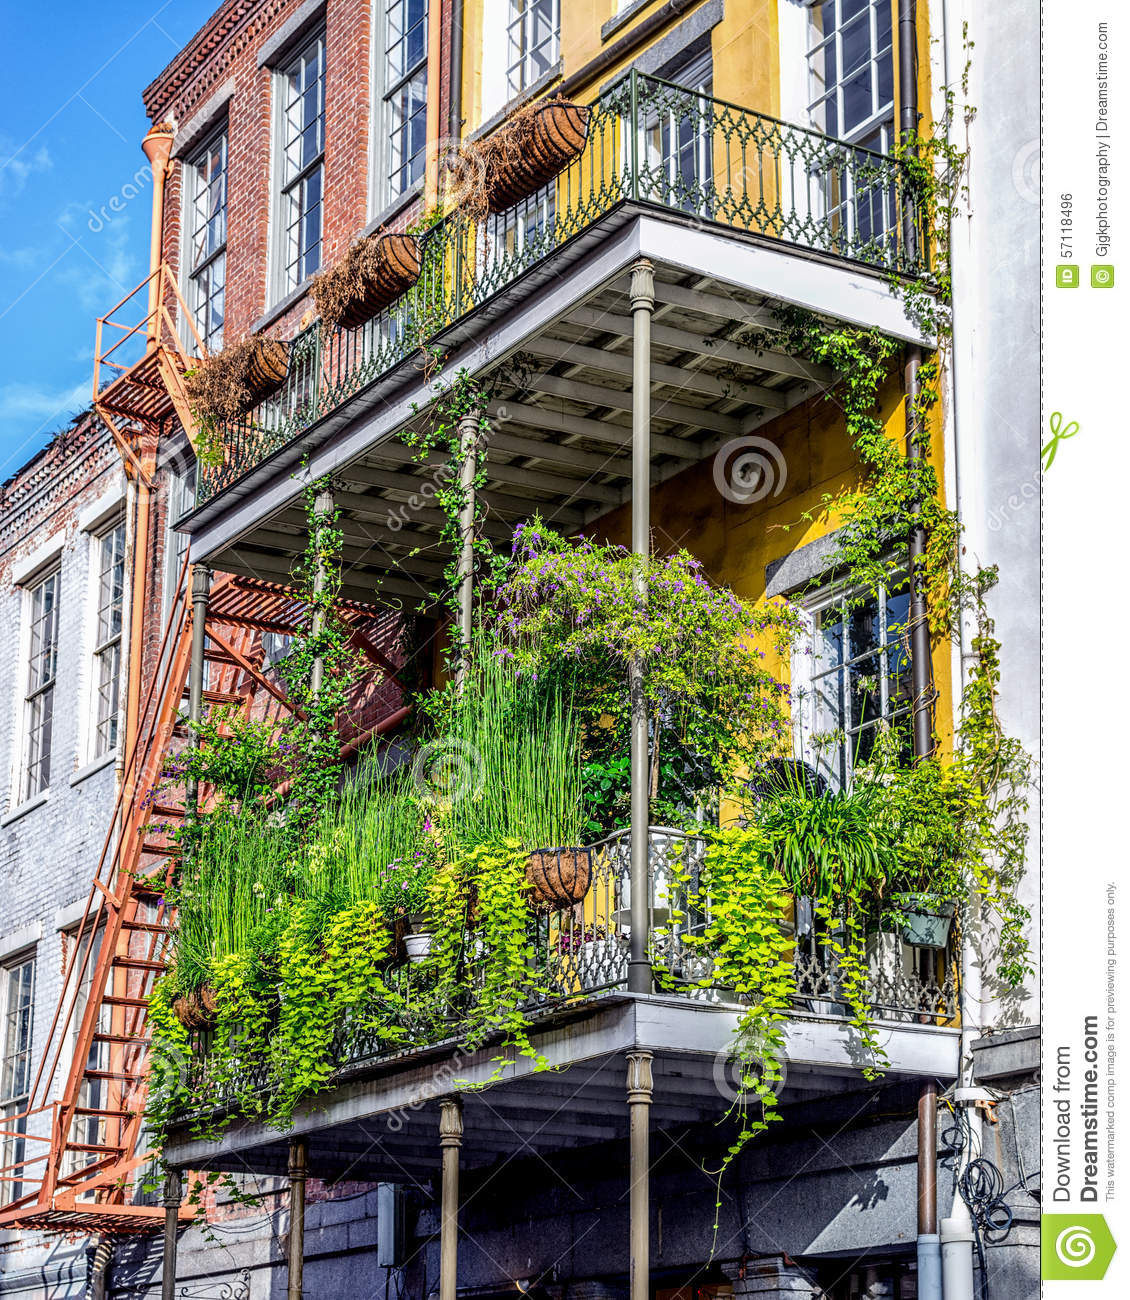 Balcony with plants 11 in the french quarter new orleans for Balcony french